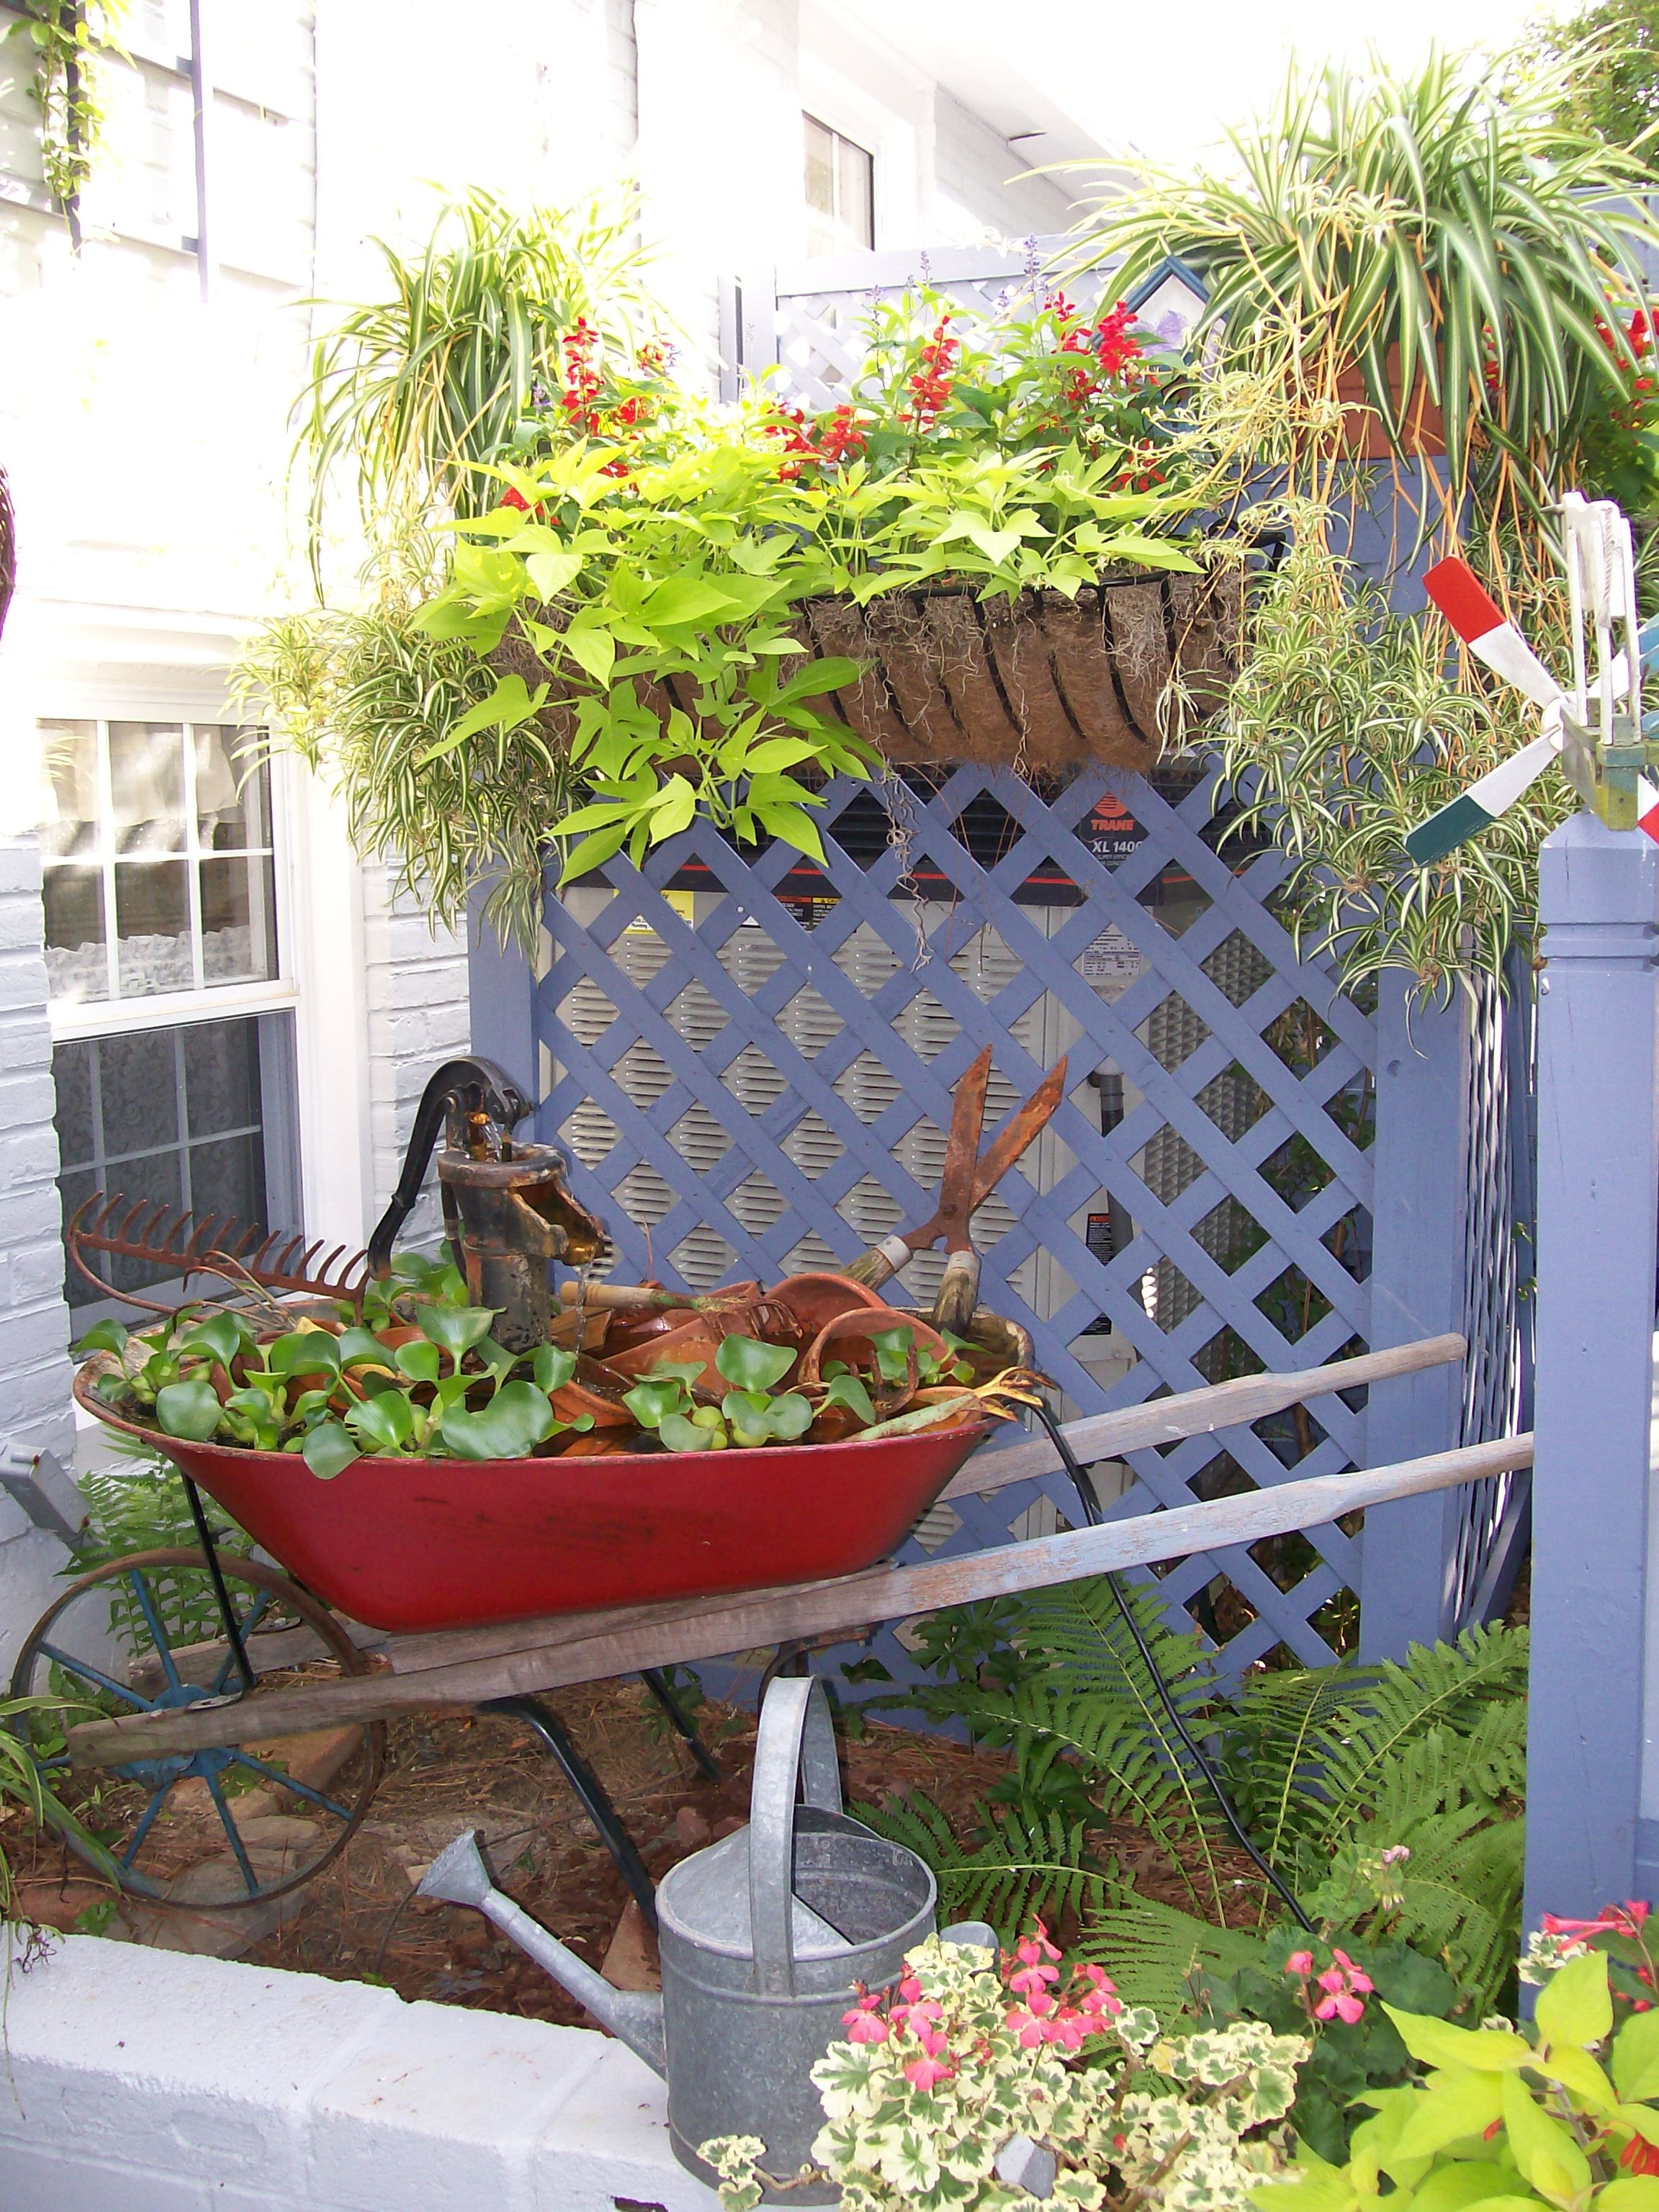 Flower Garden Ideas With Old Wheelbarrow wheelbarrow water garden  <3 this repurposed old wheelbarrow